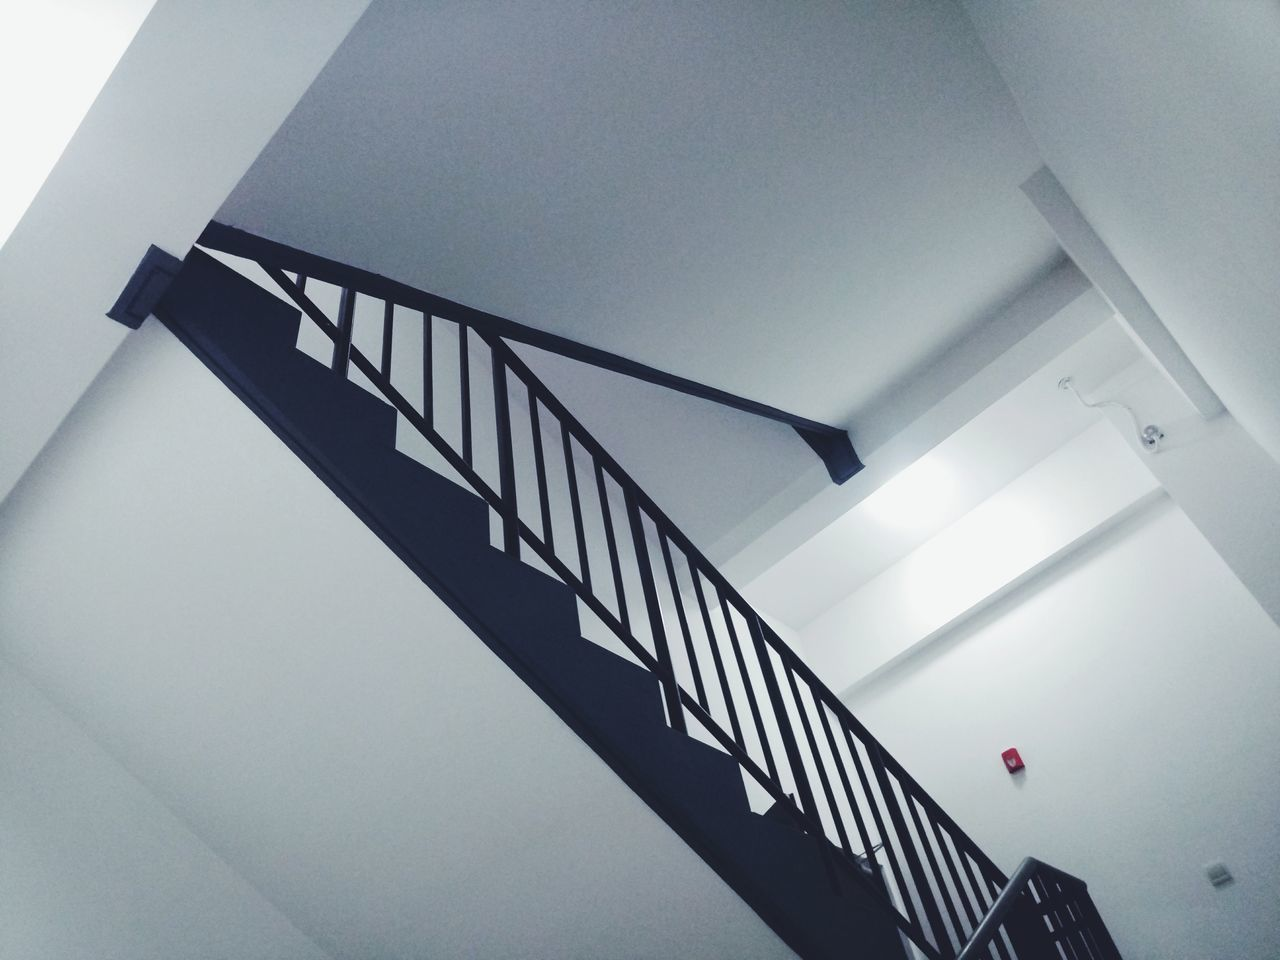 railing, staircase, steps and staircases, steps, built structure, architecture, stairs, low angle view, hand rail, no people, day, indoors